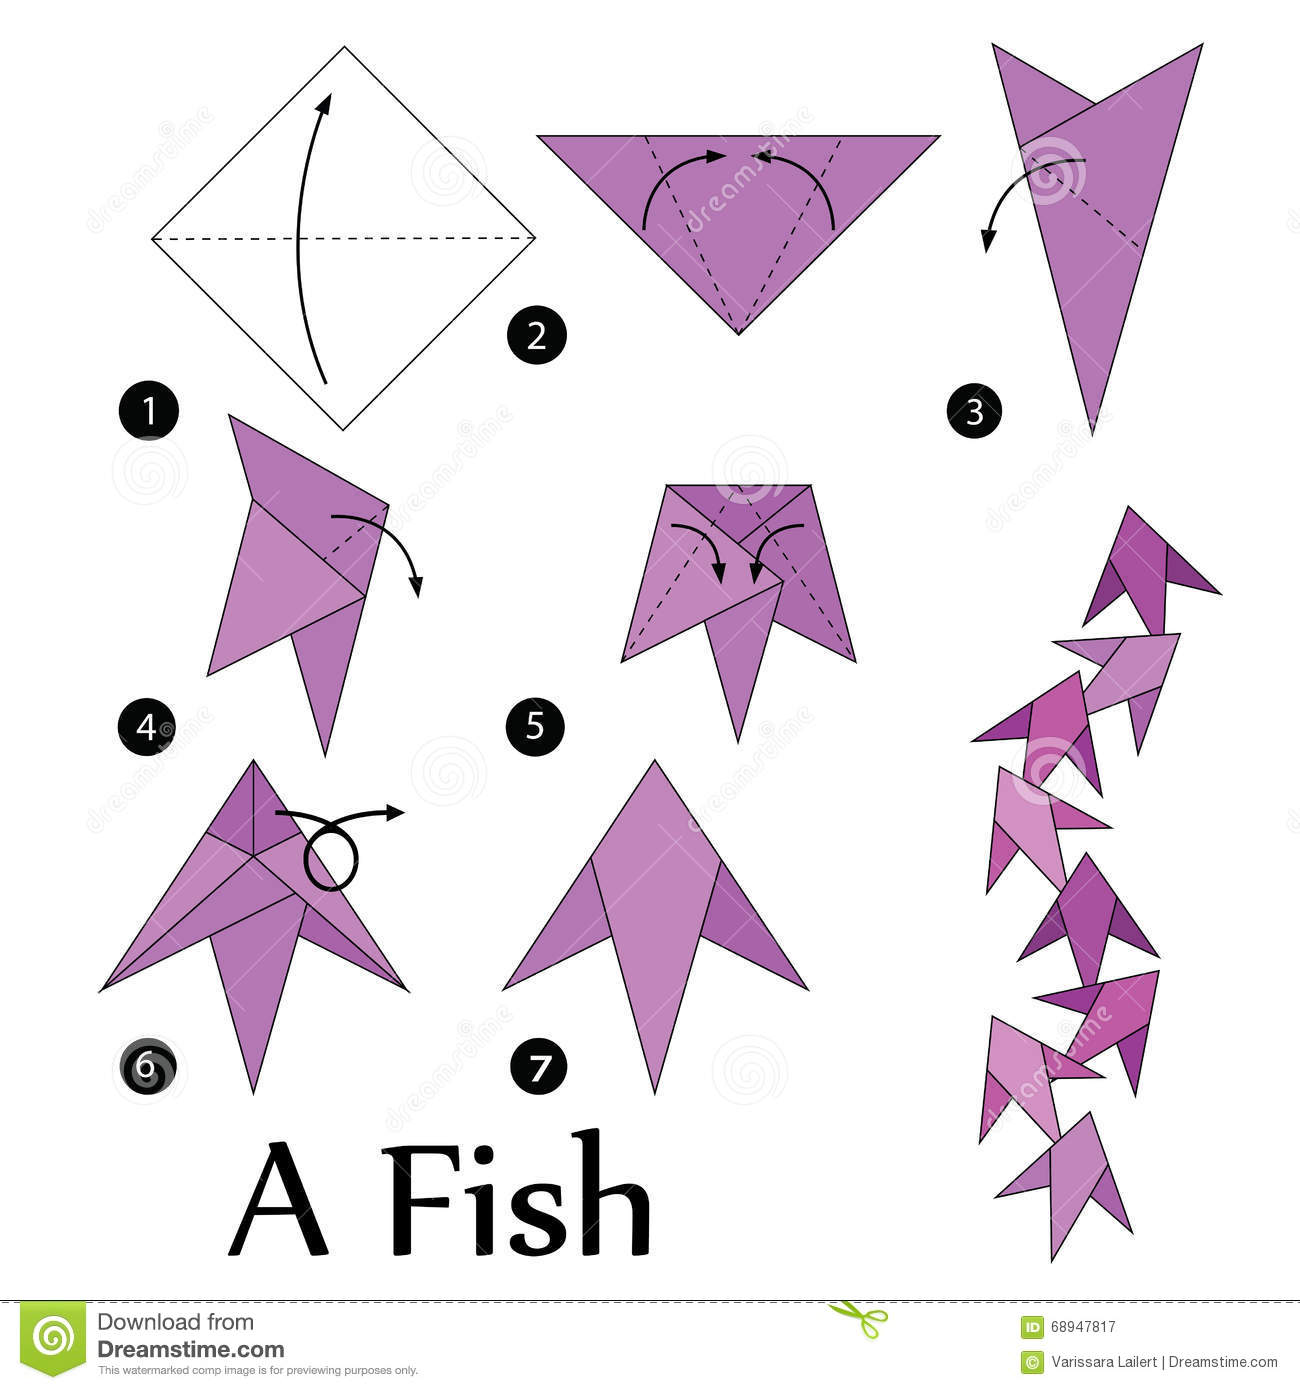 Step by step instructions how to make origami a fish for Origami fish instructions